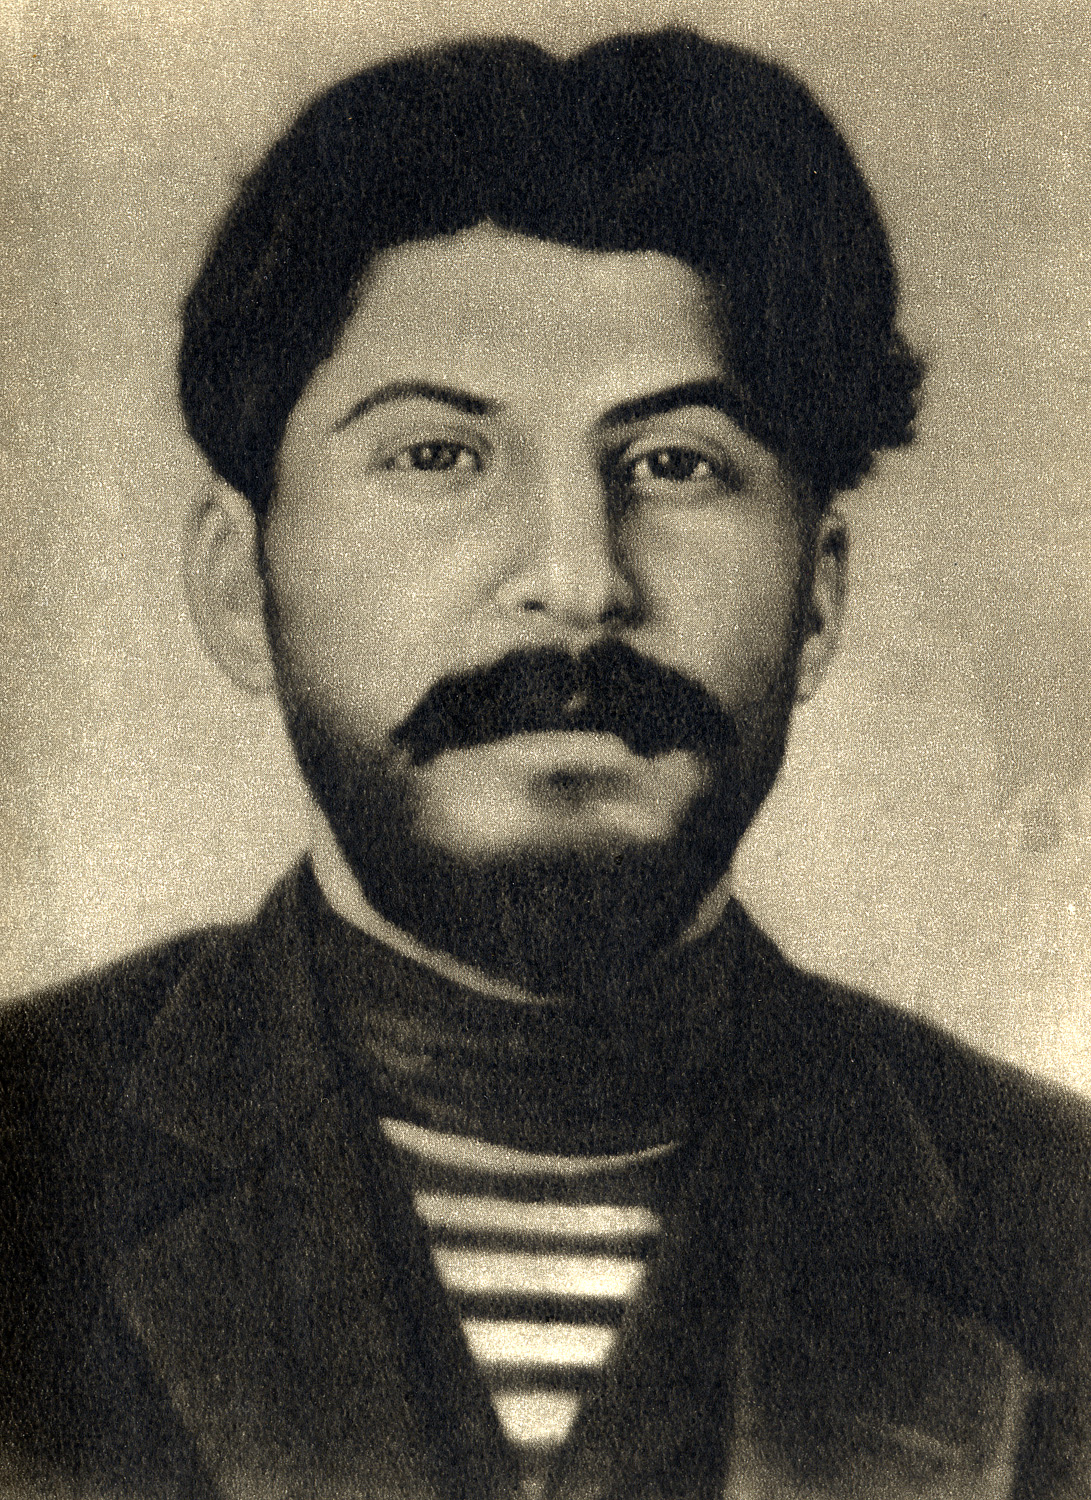 josef stalin A detailed biography of joseph stalin that includes includes images, quotations and the main facts of his life stalin's death key stage 3 gcse russian revolution.